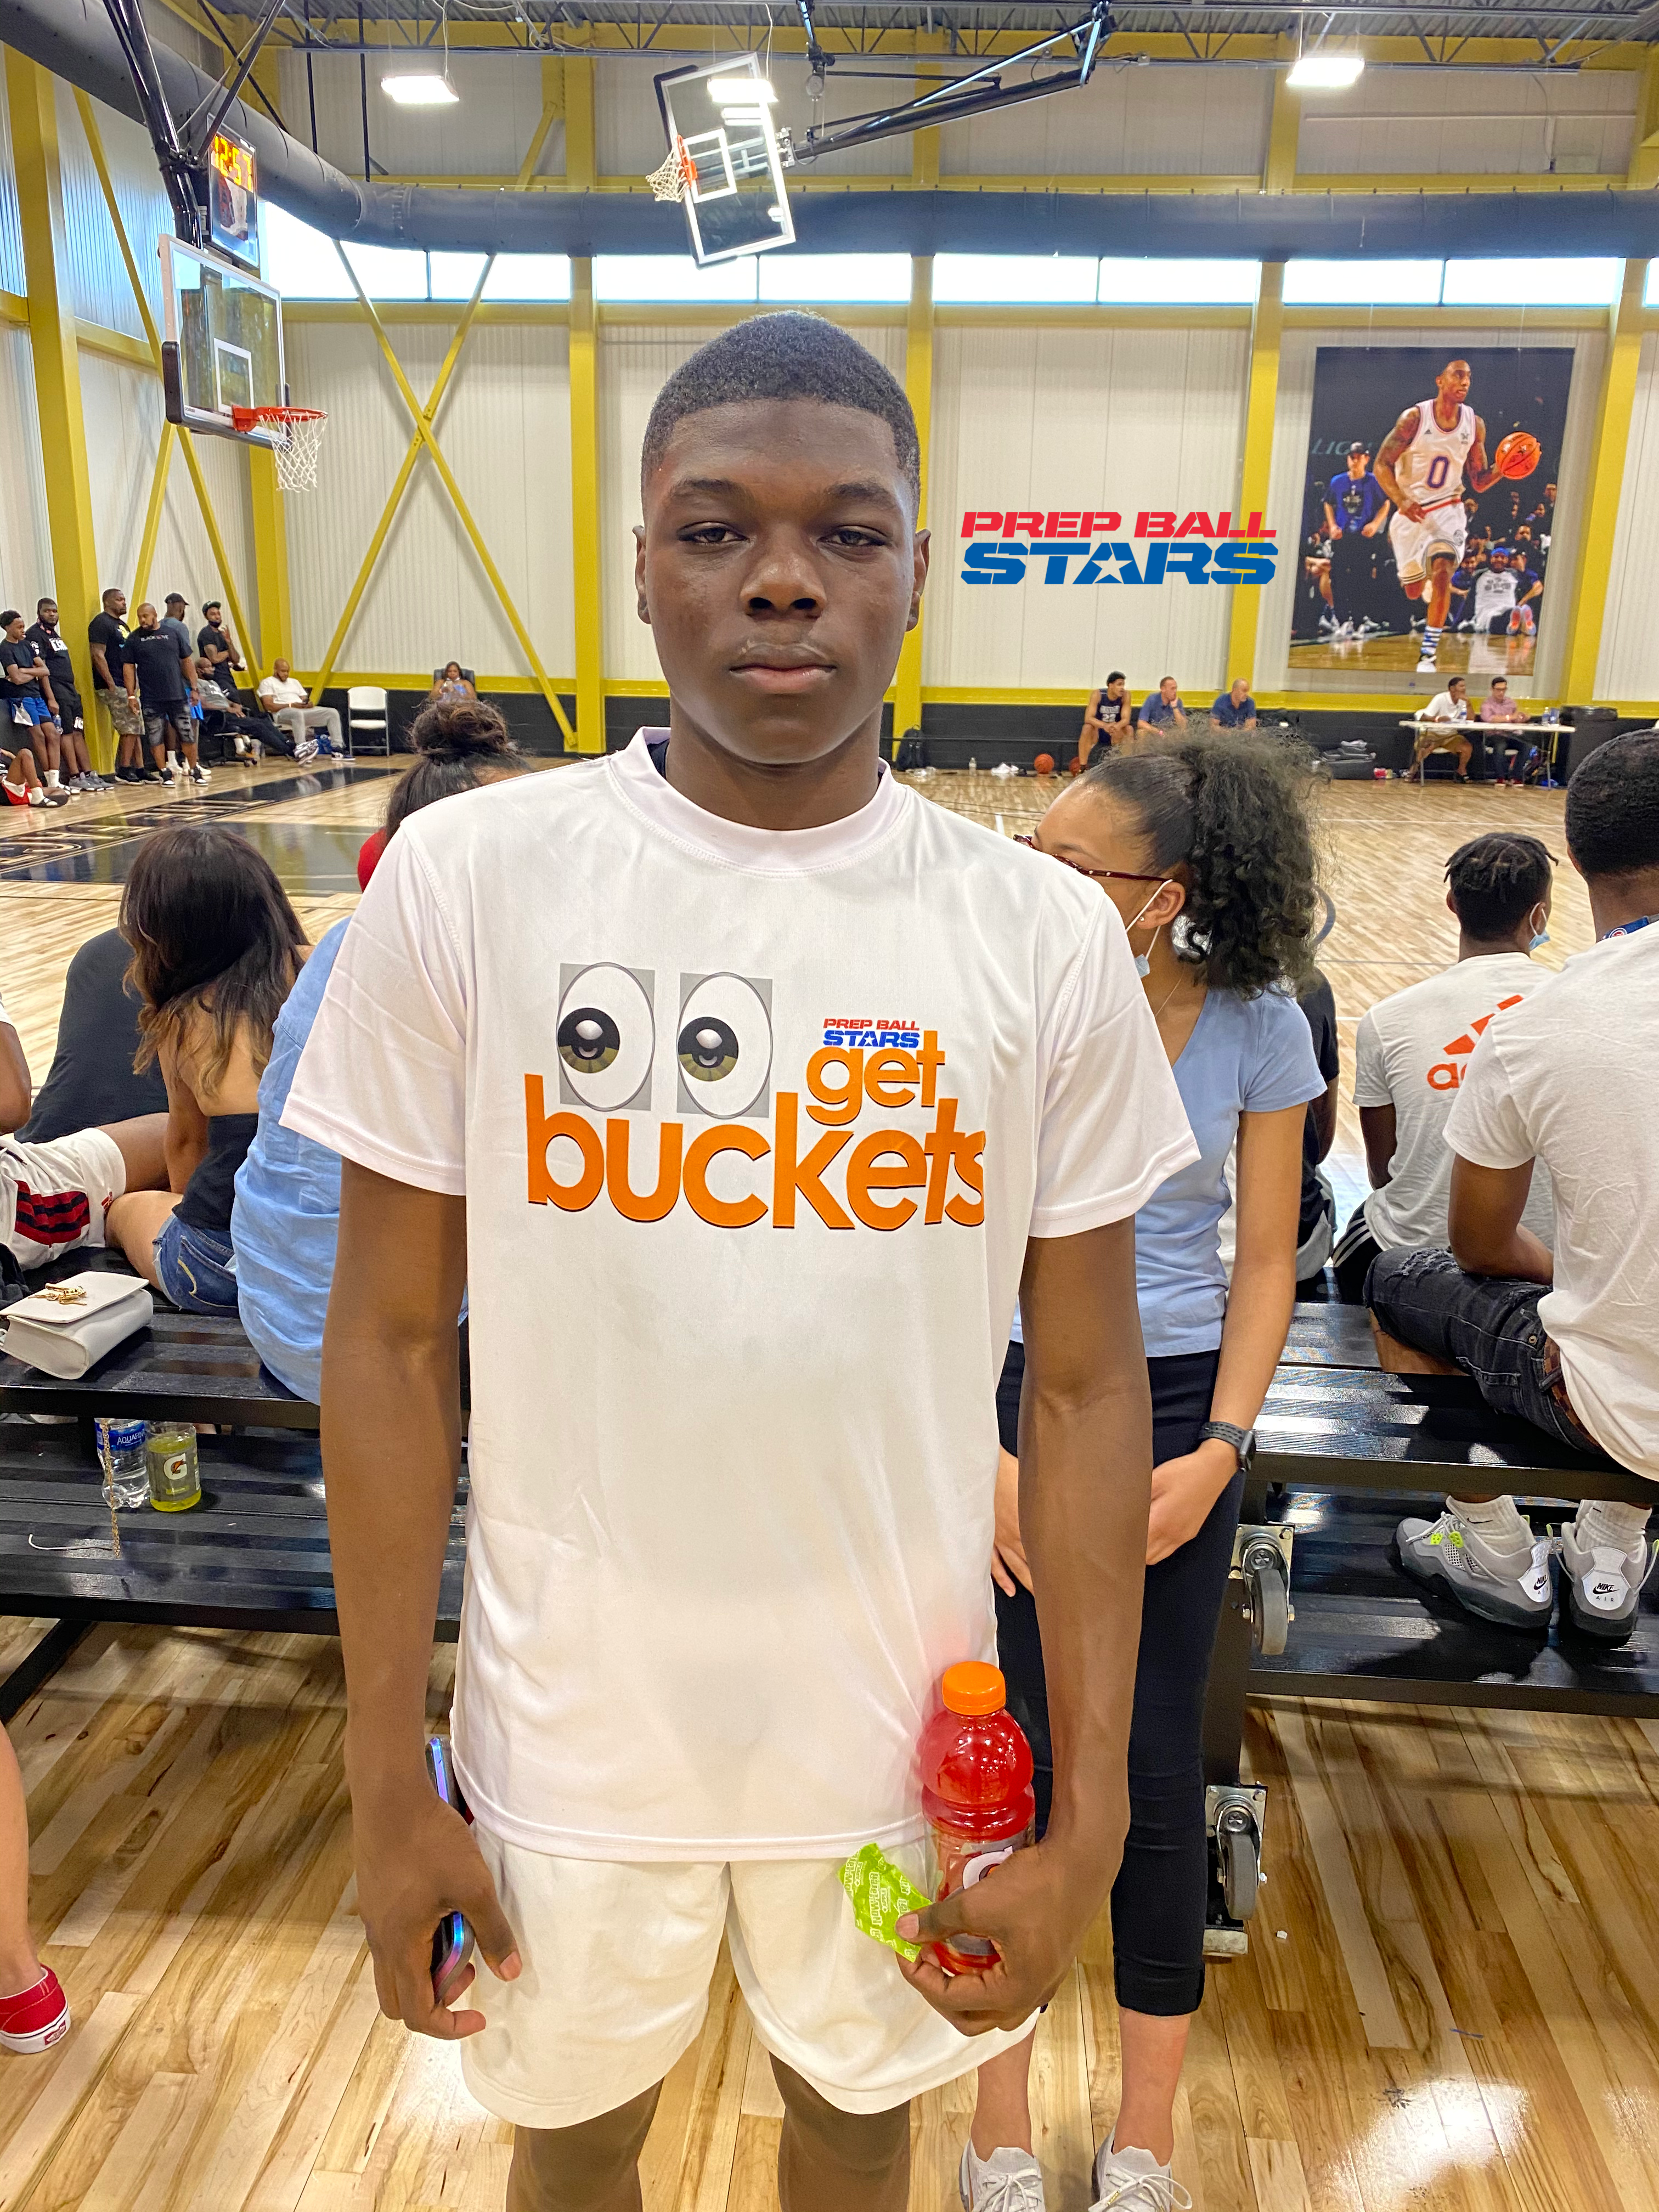 Who Got Buckets This Summer?